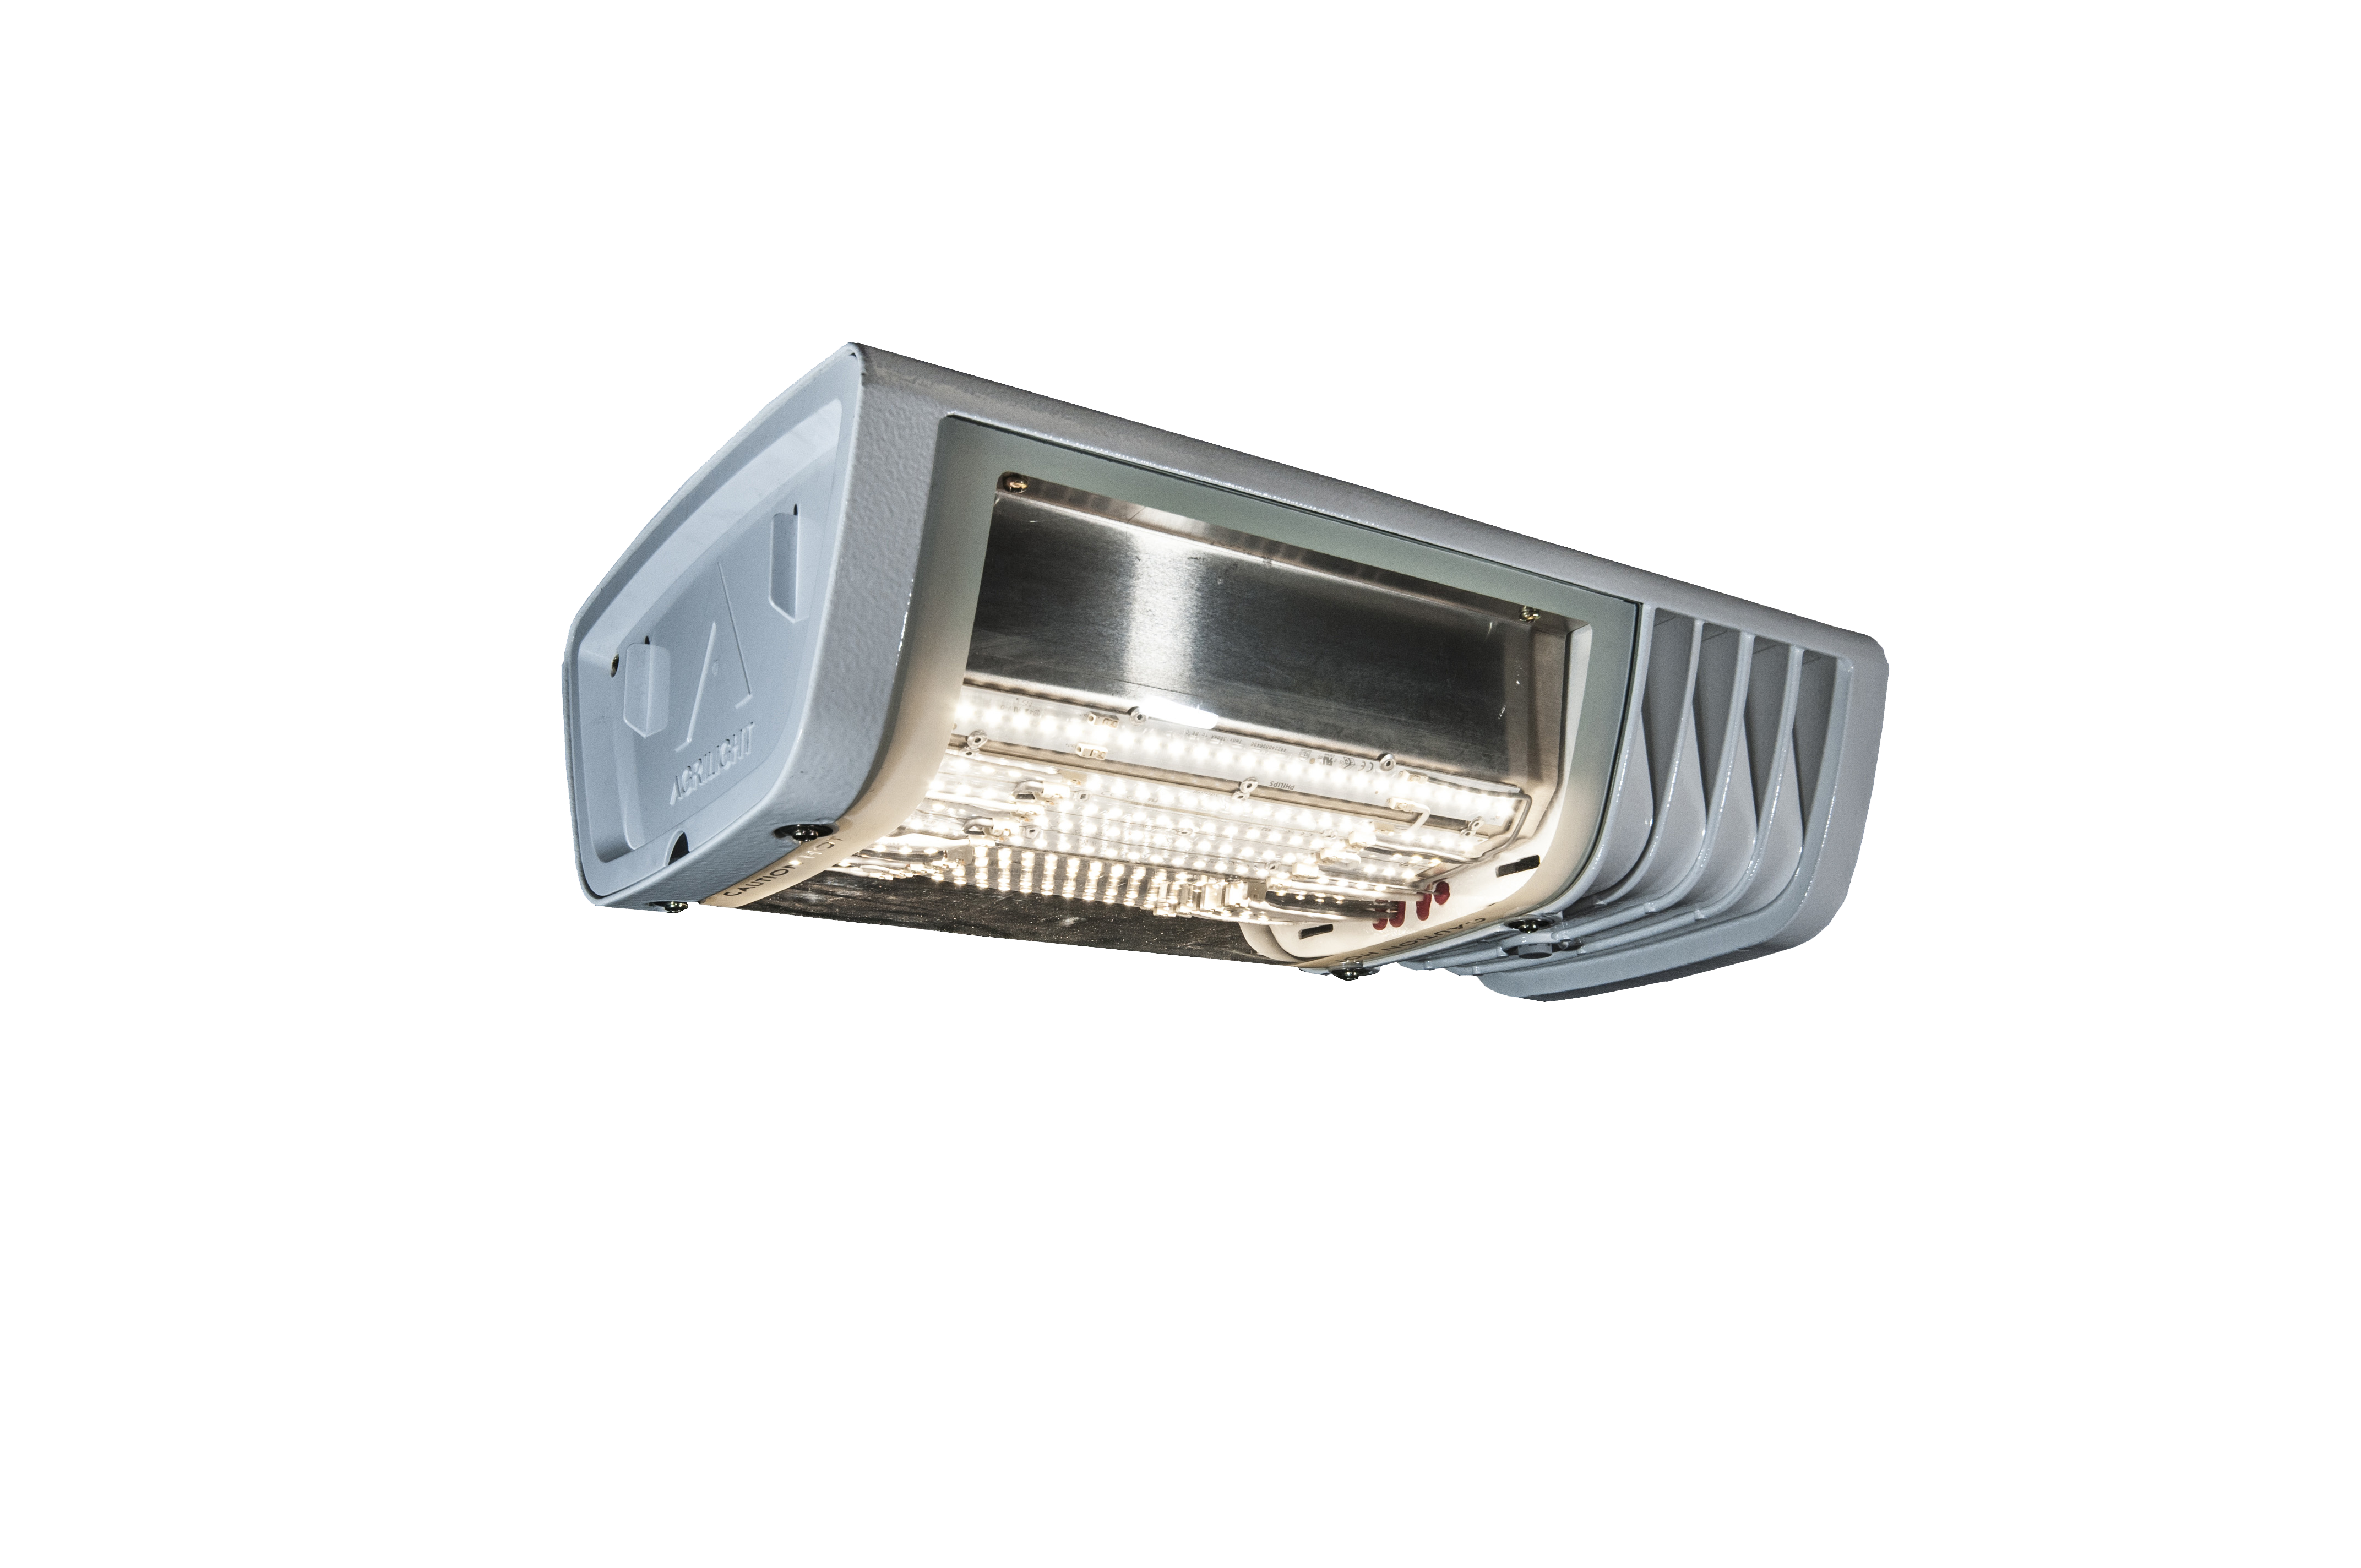 Home advantek led lighting solutions commerical industrial agricultural lighting arubaitofo Gallery